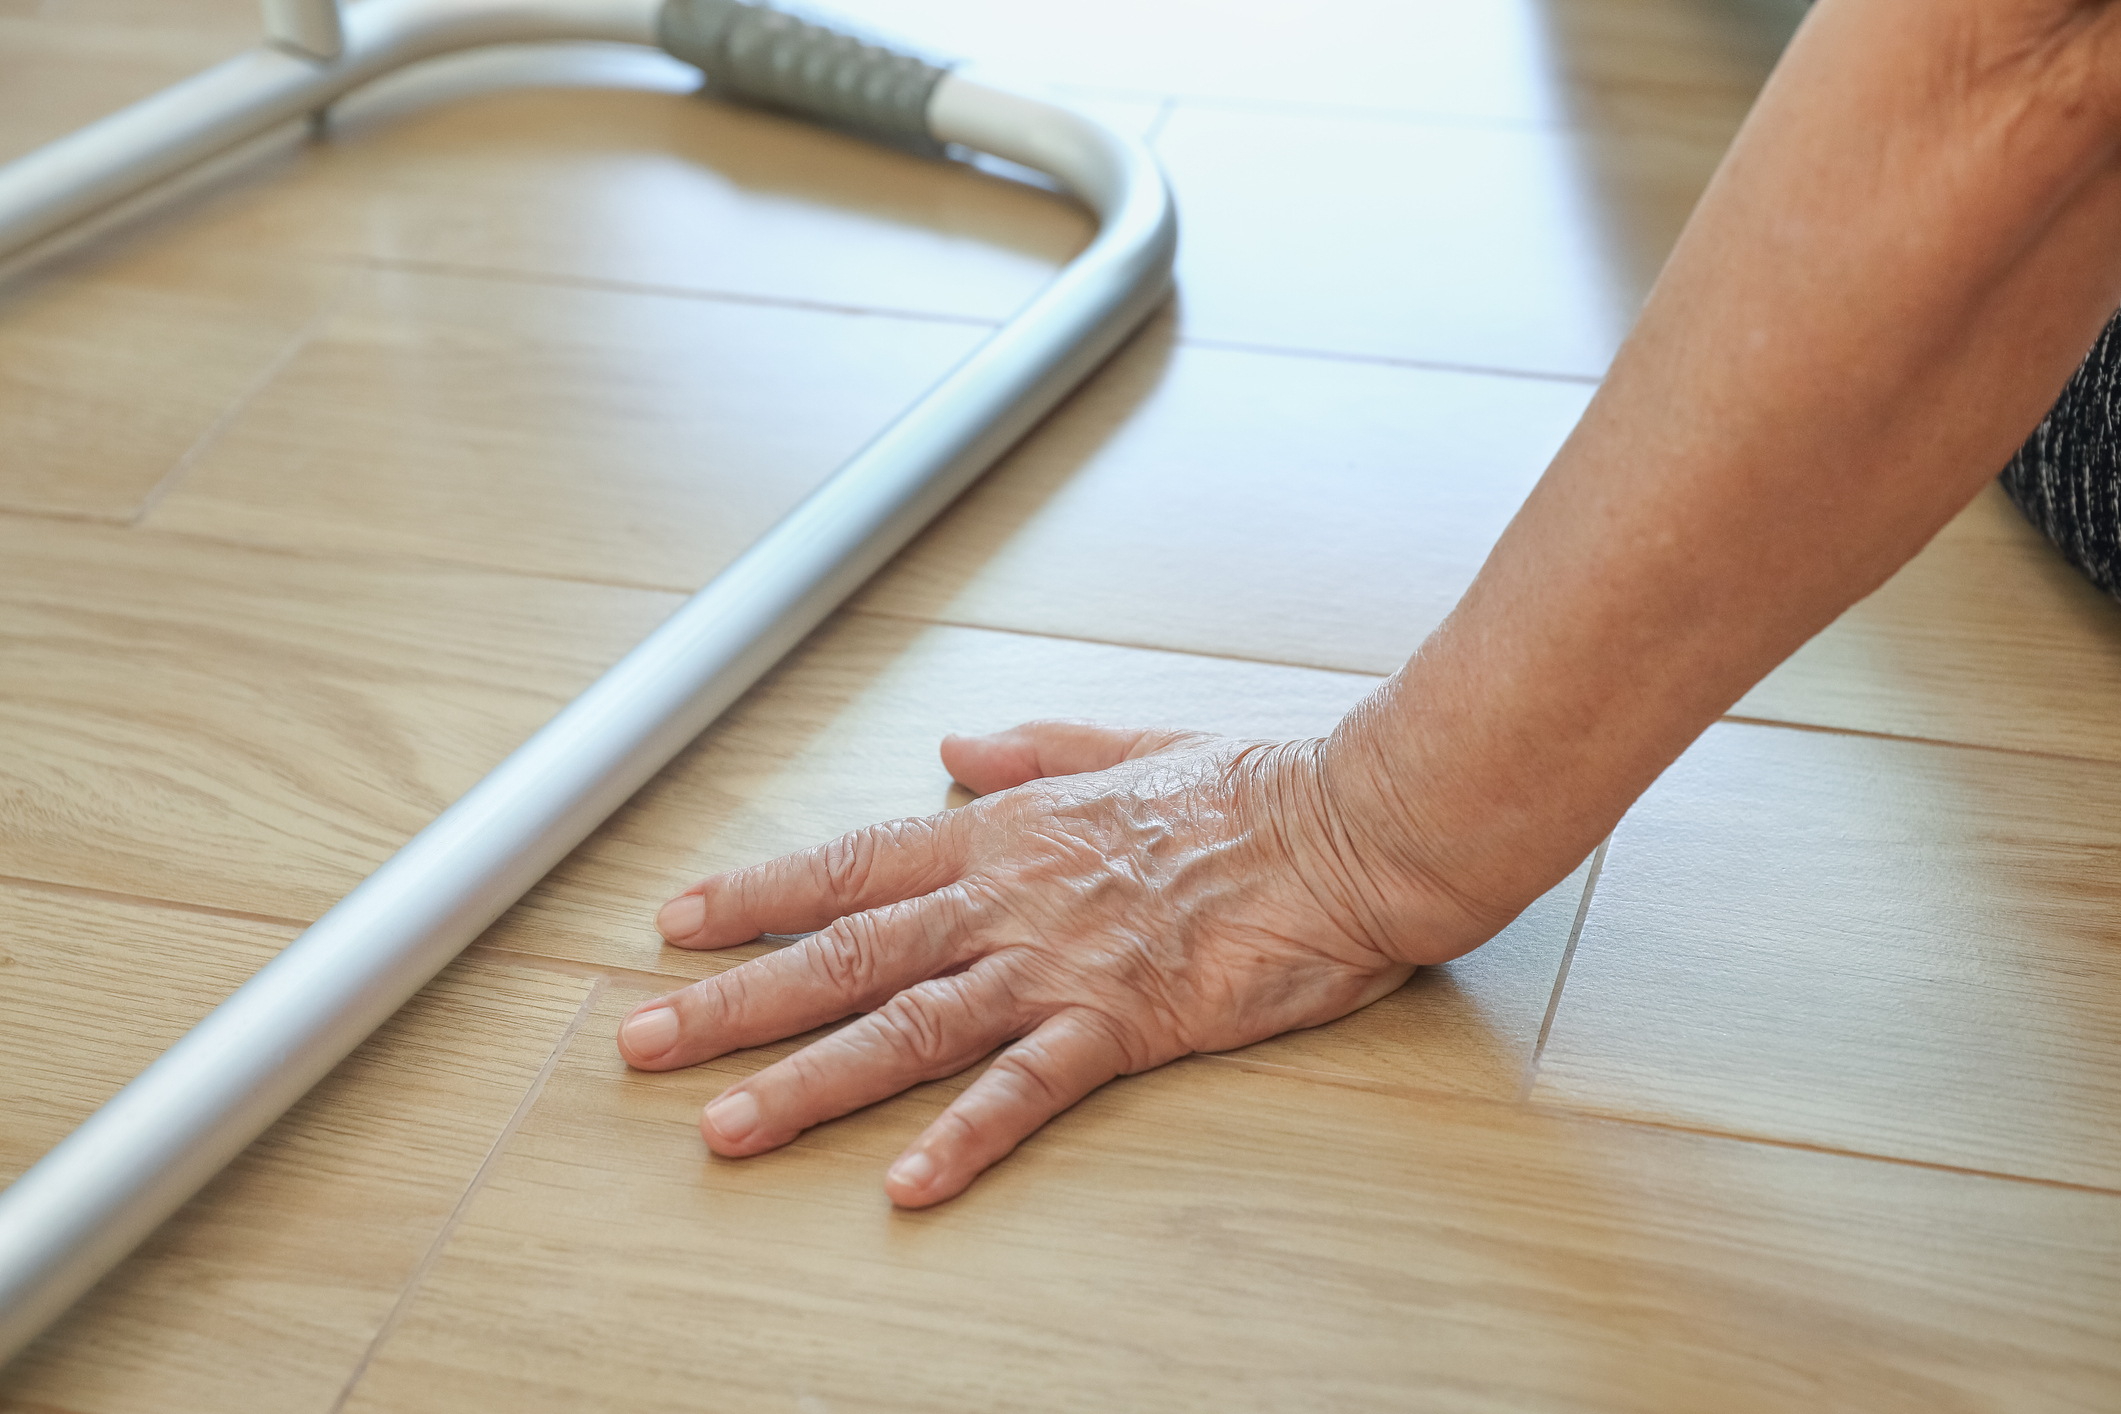 Elderly woman falling down at home. Image credit: iStock